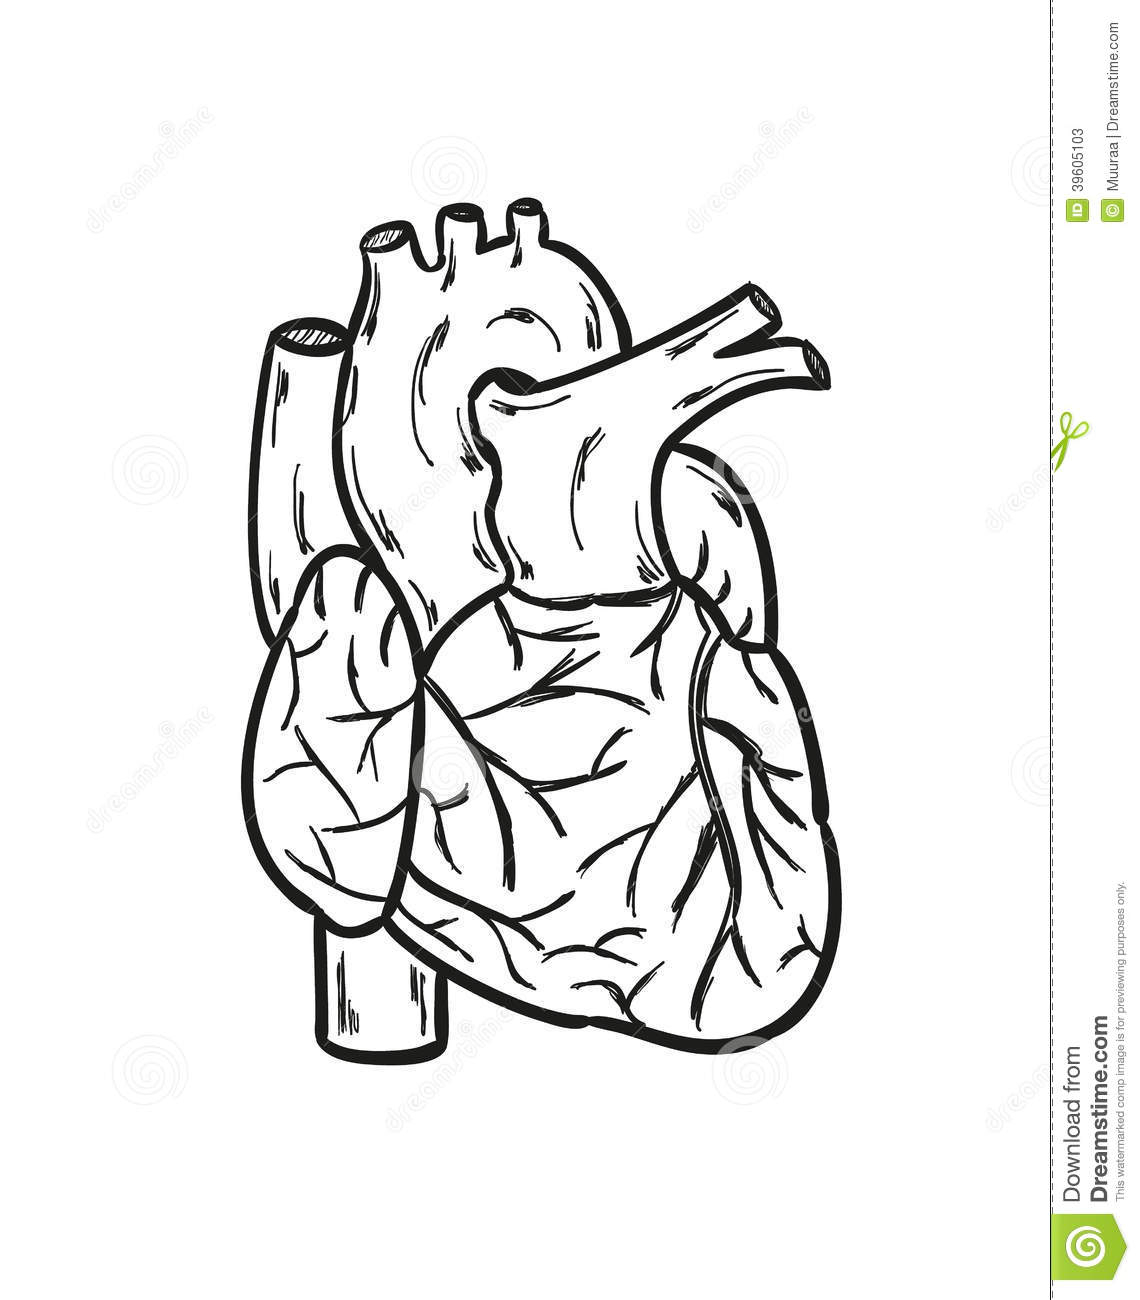 1140x1300 Simple Human Heart Drawing Similiar Simple Human Heart Outline